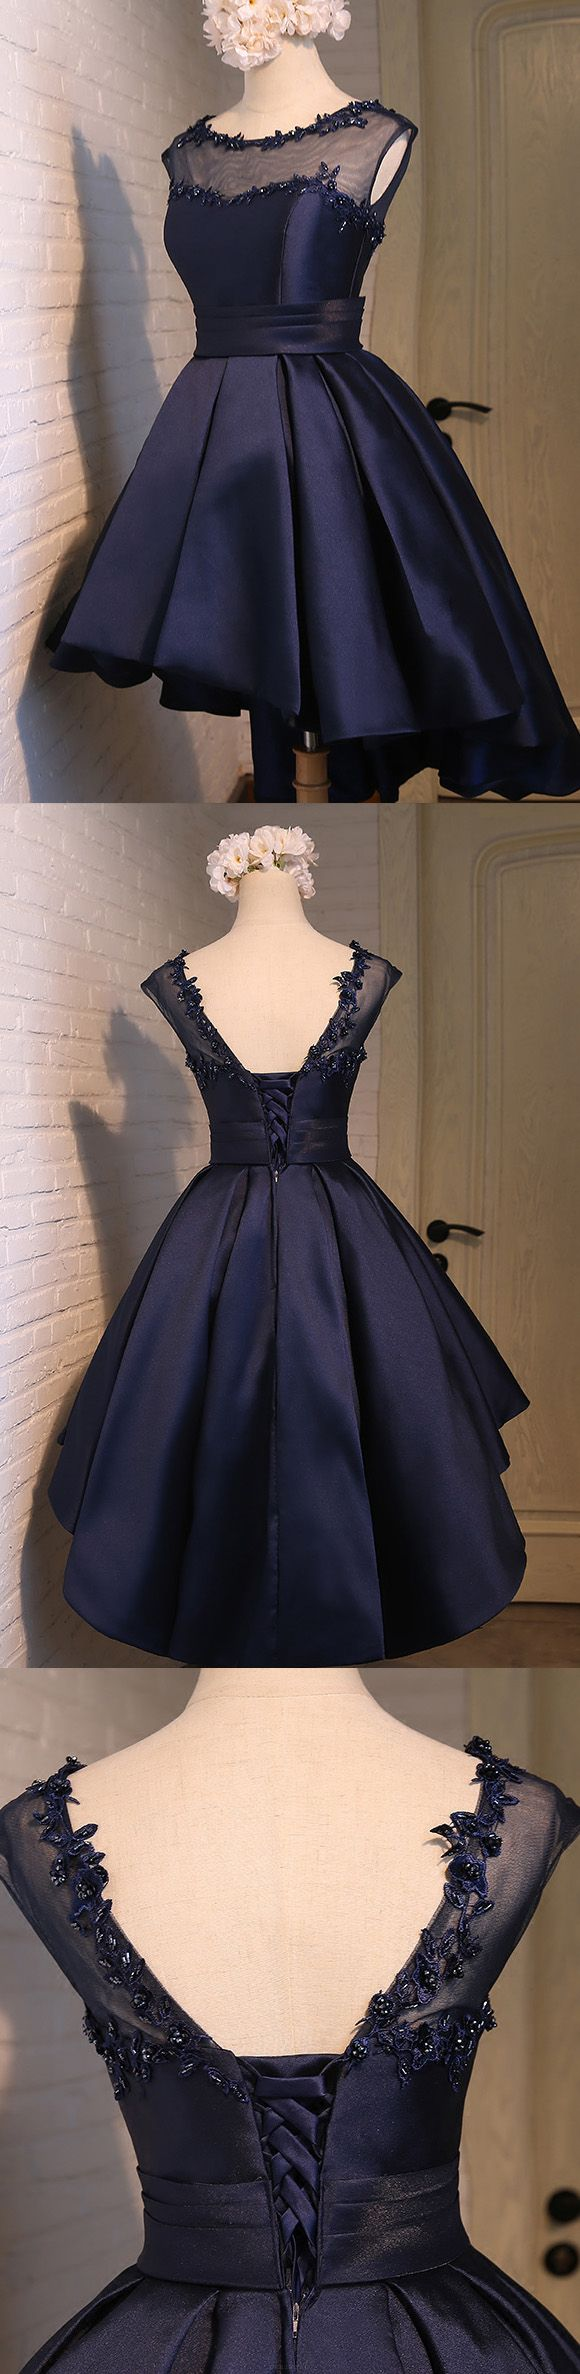 Real talk, I'm ordering a dress from dresslily and I'll put something here on how it looks and whether or not I recommend the site.